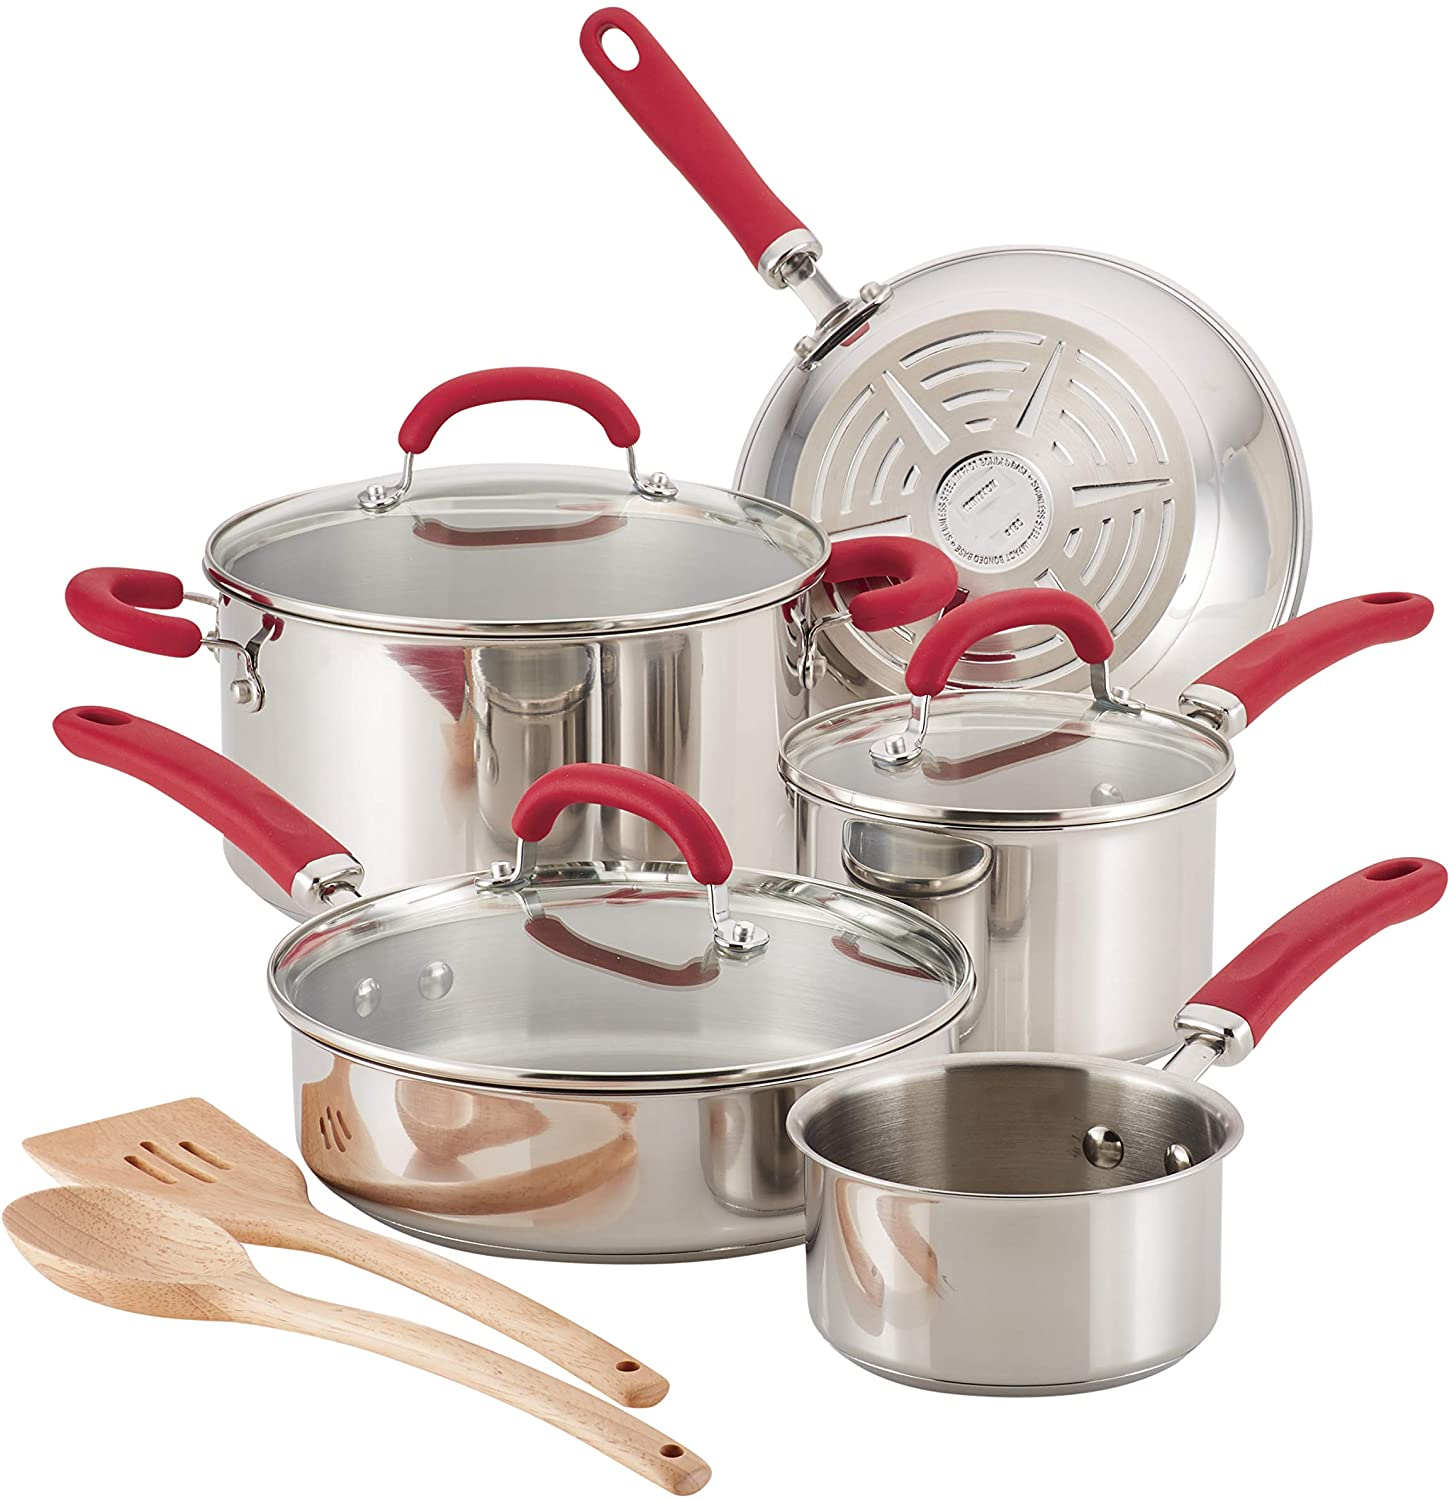 Rachael Ray Create Delicious 10 Piece Stainless Steel Cookware Set, Stainless Steel with Red Handles